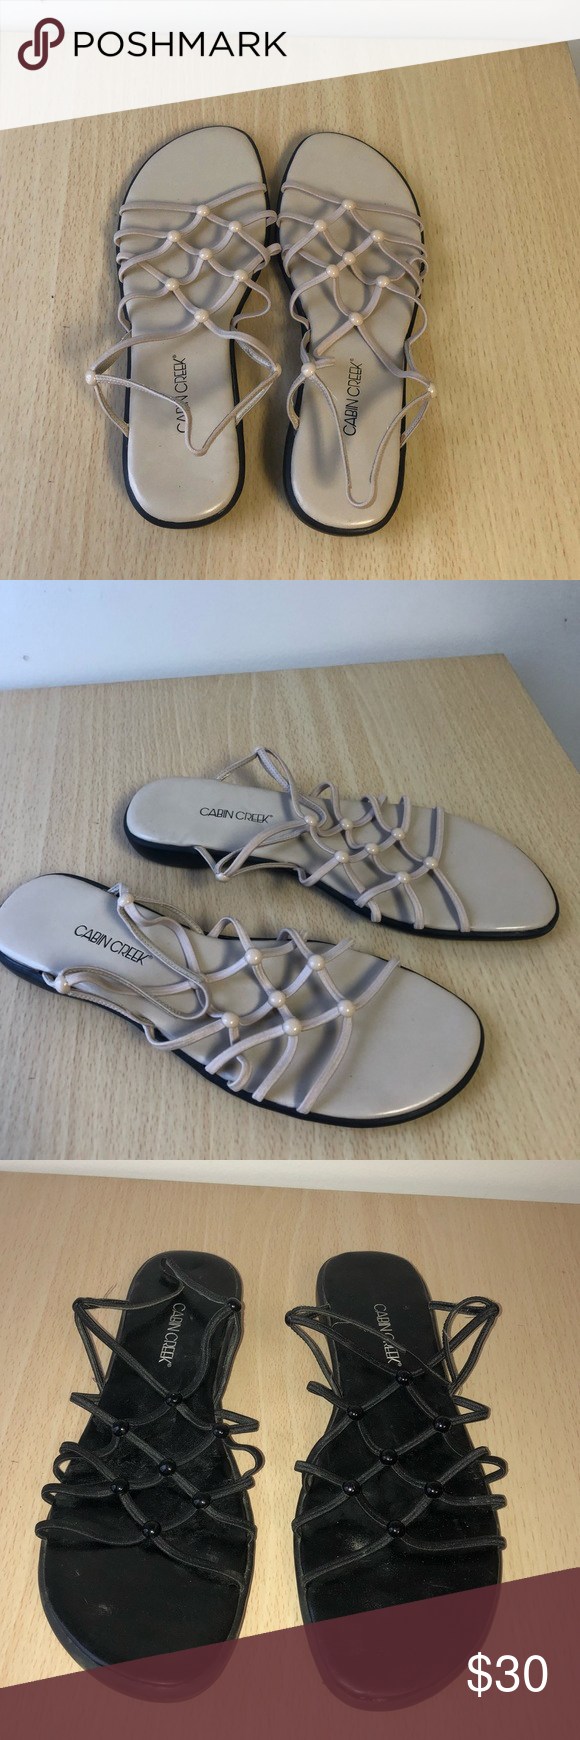 30ef36900255 BUNDLE OF 3–Cabin Creek Sandals Size 8 • Good amount of wear • Some  staining on the white pair • Super comfortable • Open to Offers💕 Cabin  Creek Shoes ...